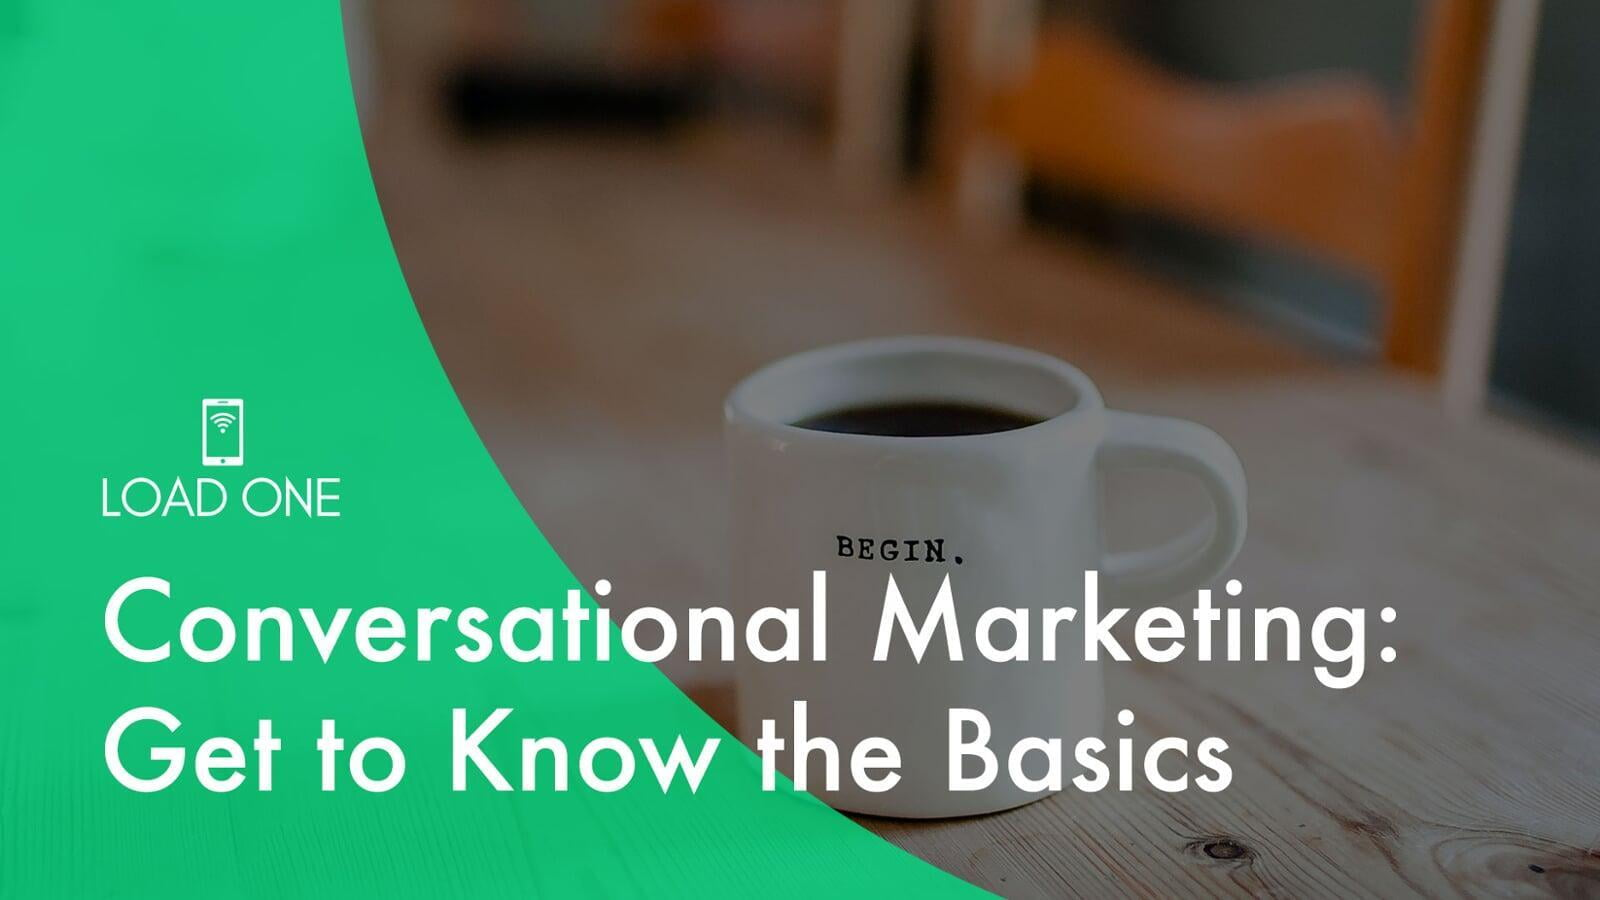 Conversational Marketing: Get to Know the Basics